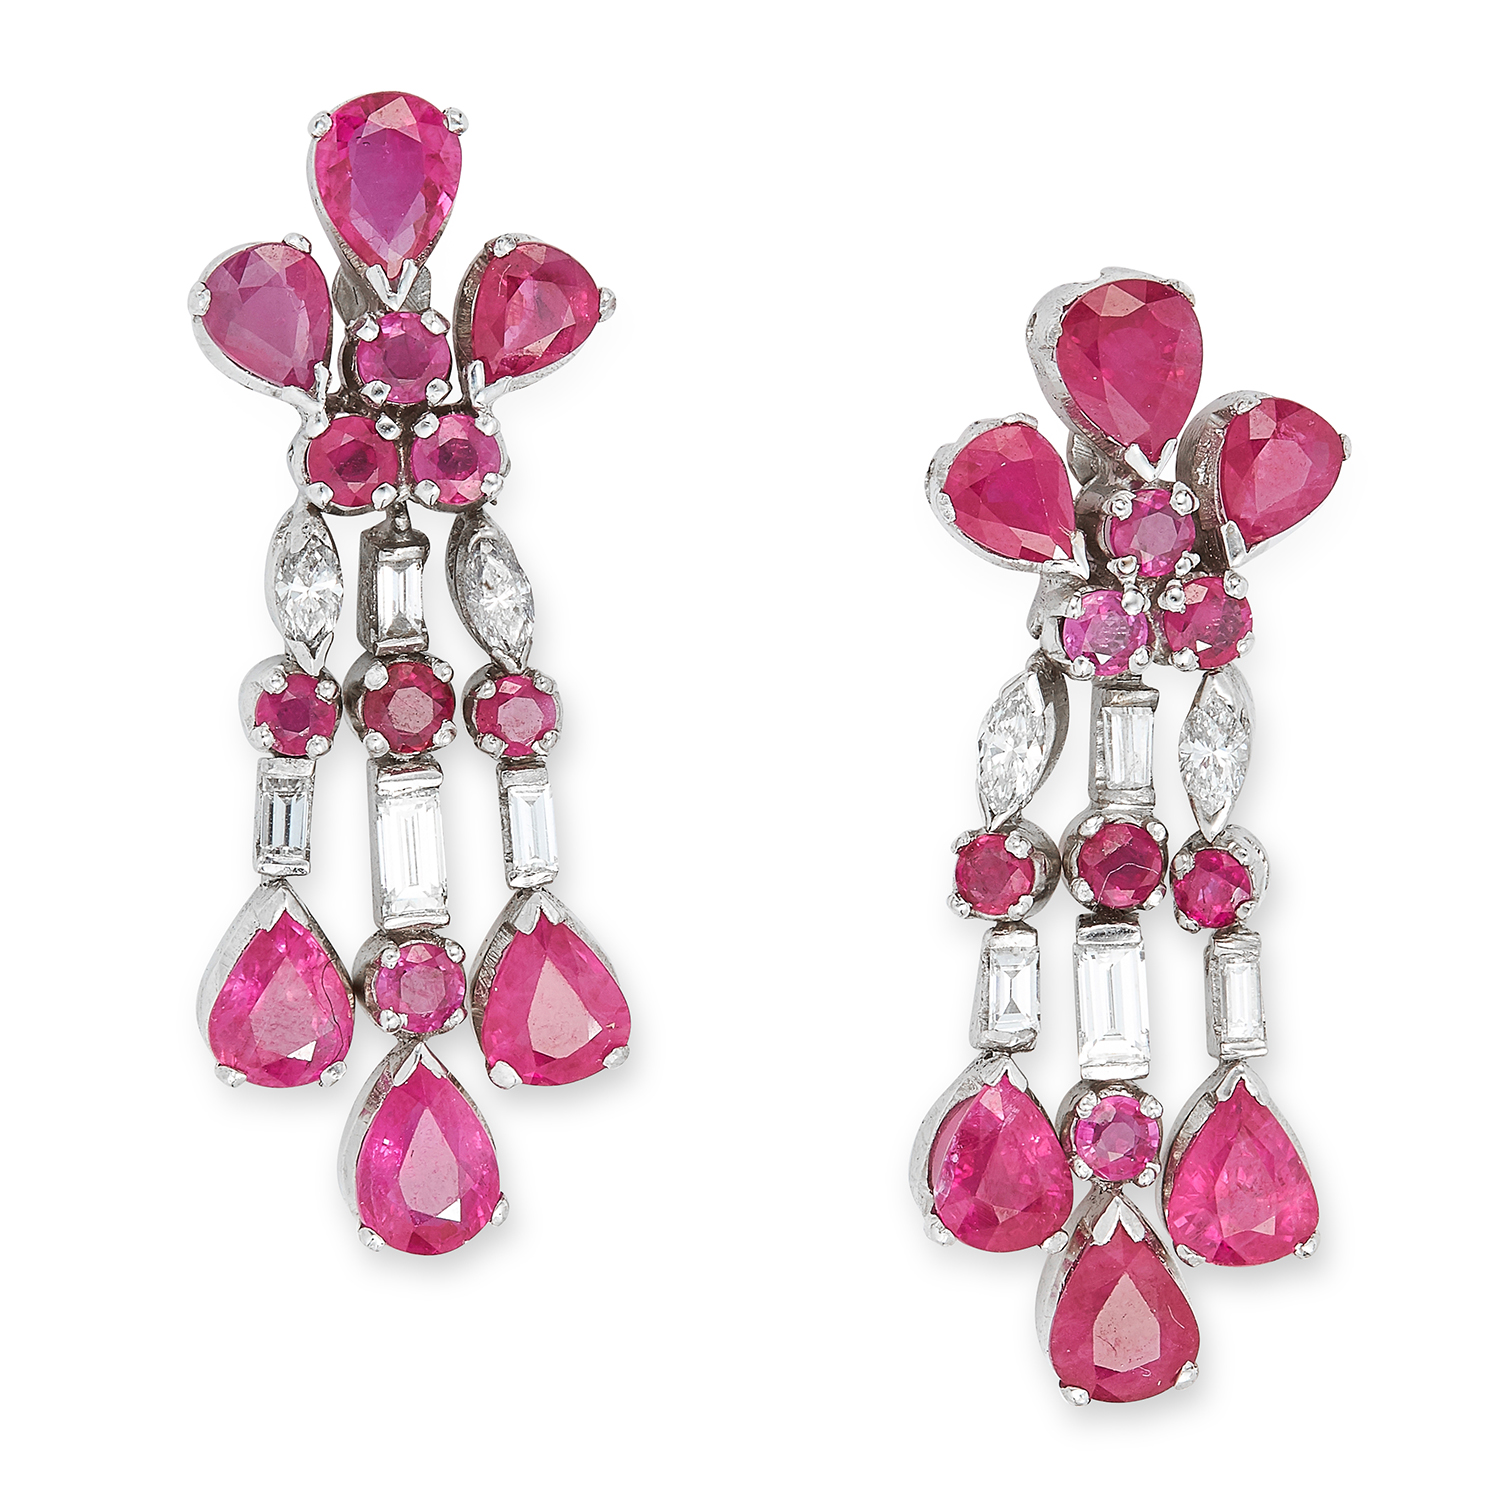 RUBY AND DIAMOND PENDENT EARRINGS set with rubies and diamonds, each suspending a trio of